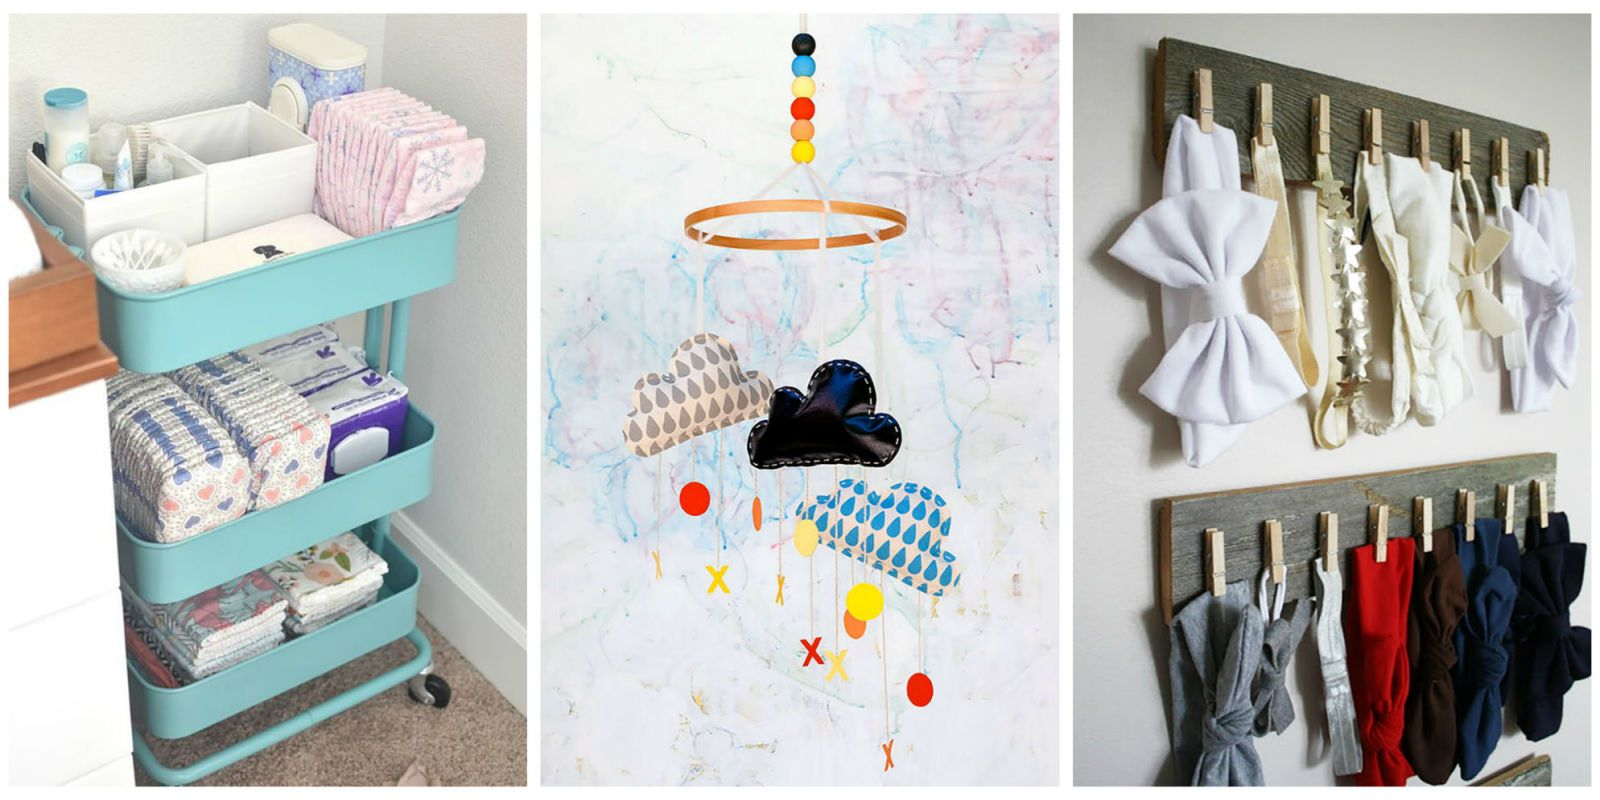 Captivating Whether You Have Space To Spare, Or You Need To Get Creative In A Small  Home, Try These Ideas For Room Decor, Storage, Organization And Other Pre  Baby ...